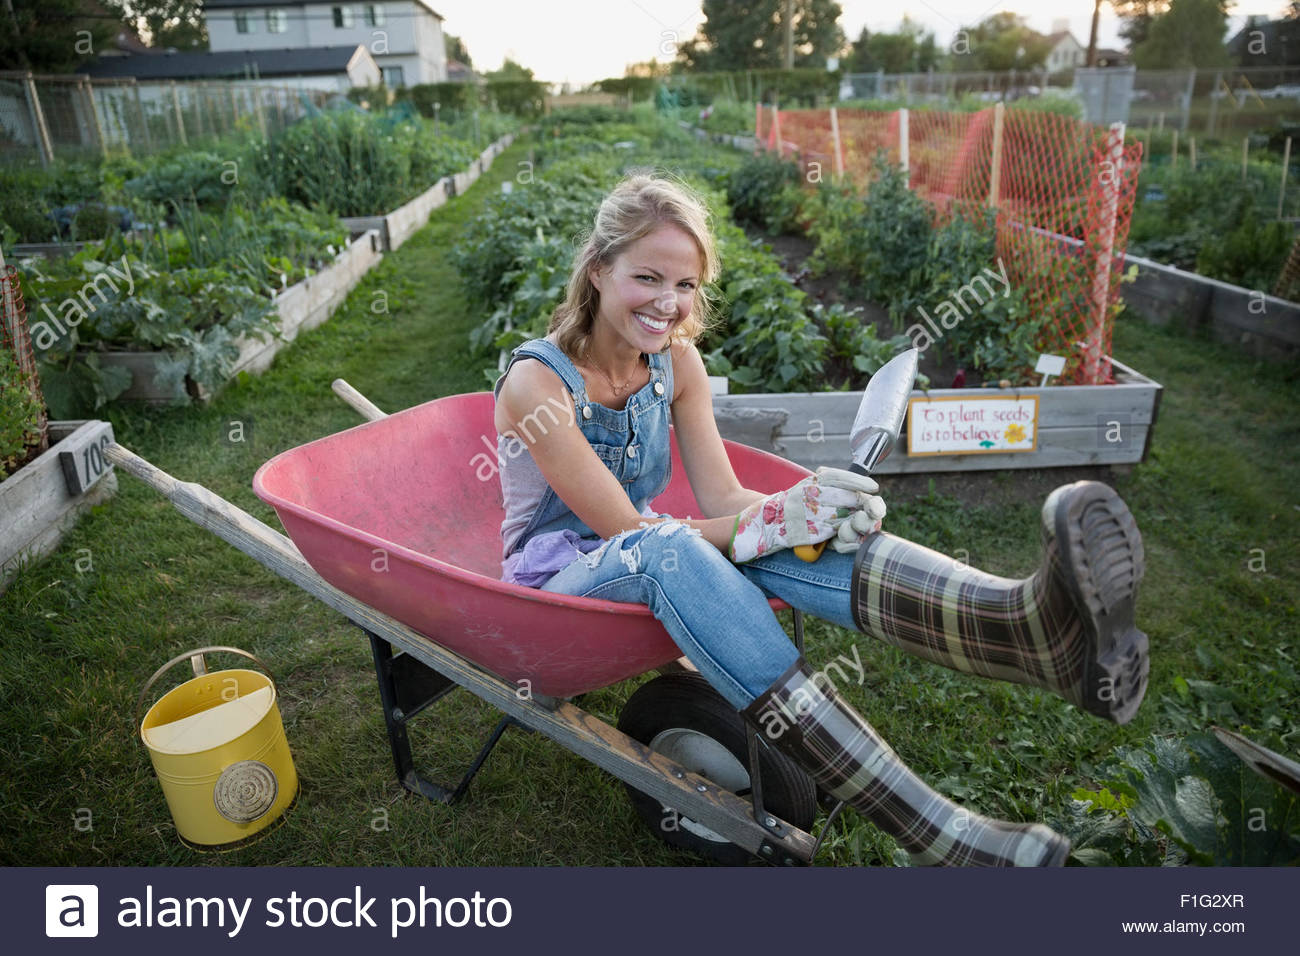 Playful woman plaid wellingtons sitting wheelbarrow garden - Stock Image